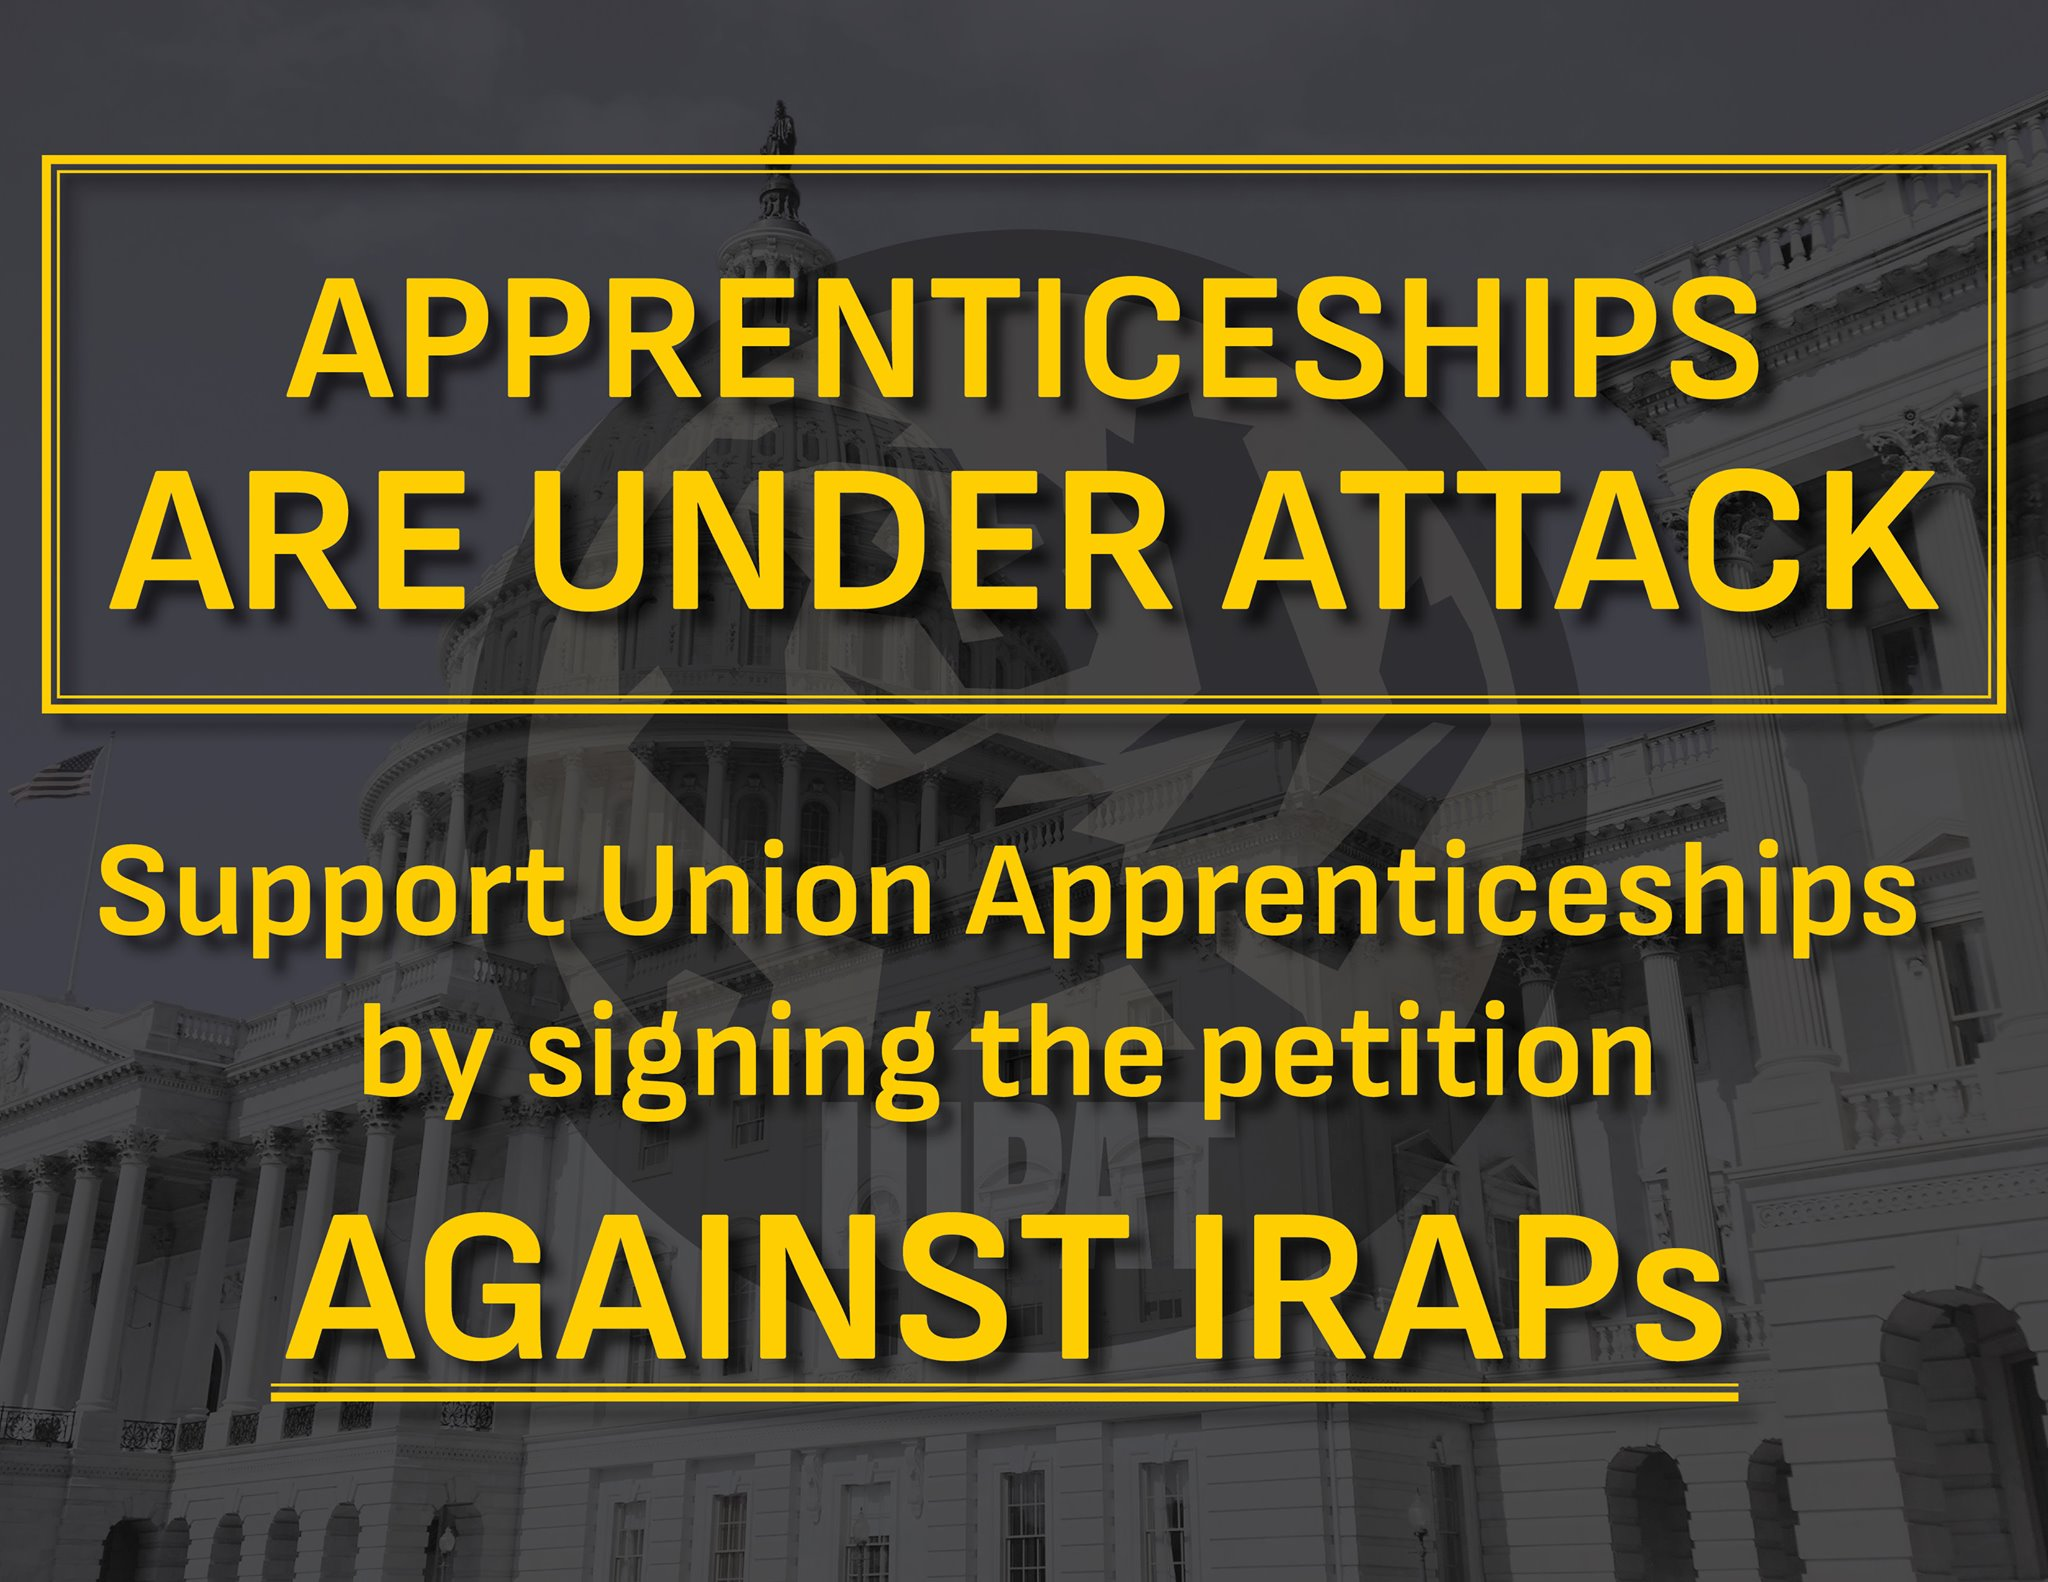 Submit Comments to Save Union Apprenticeships